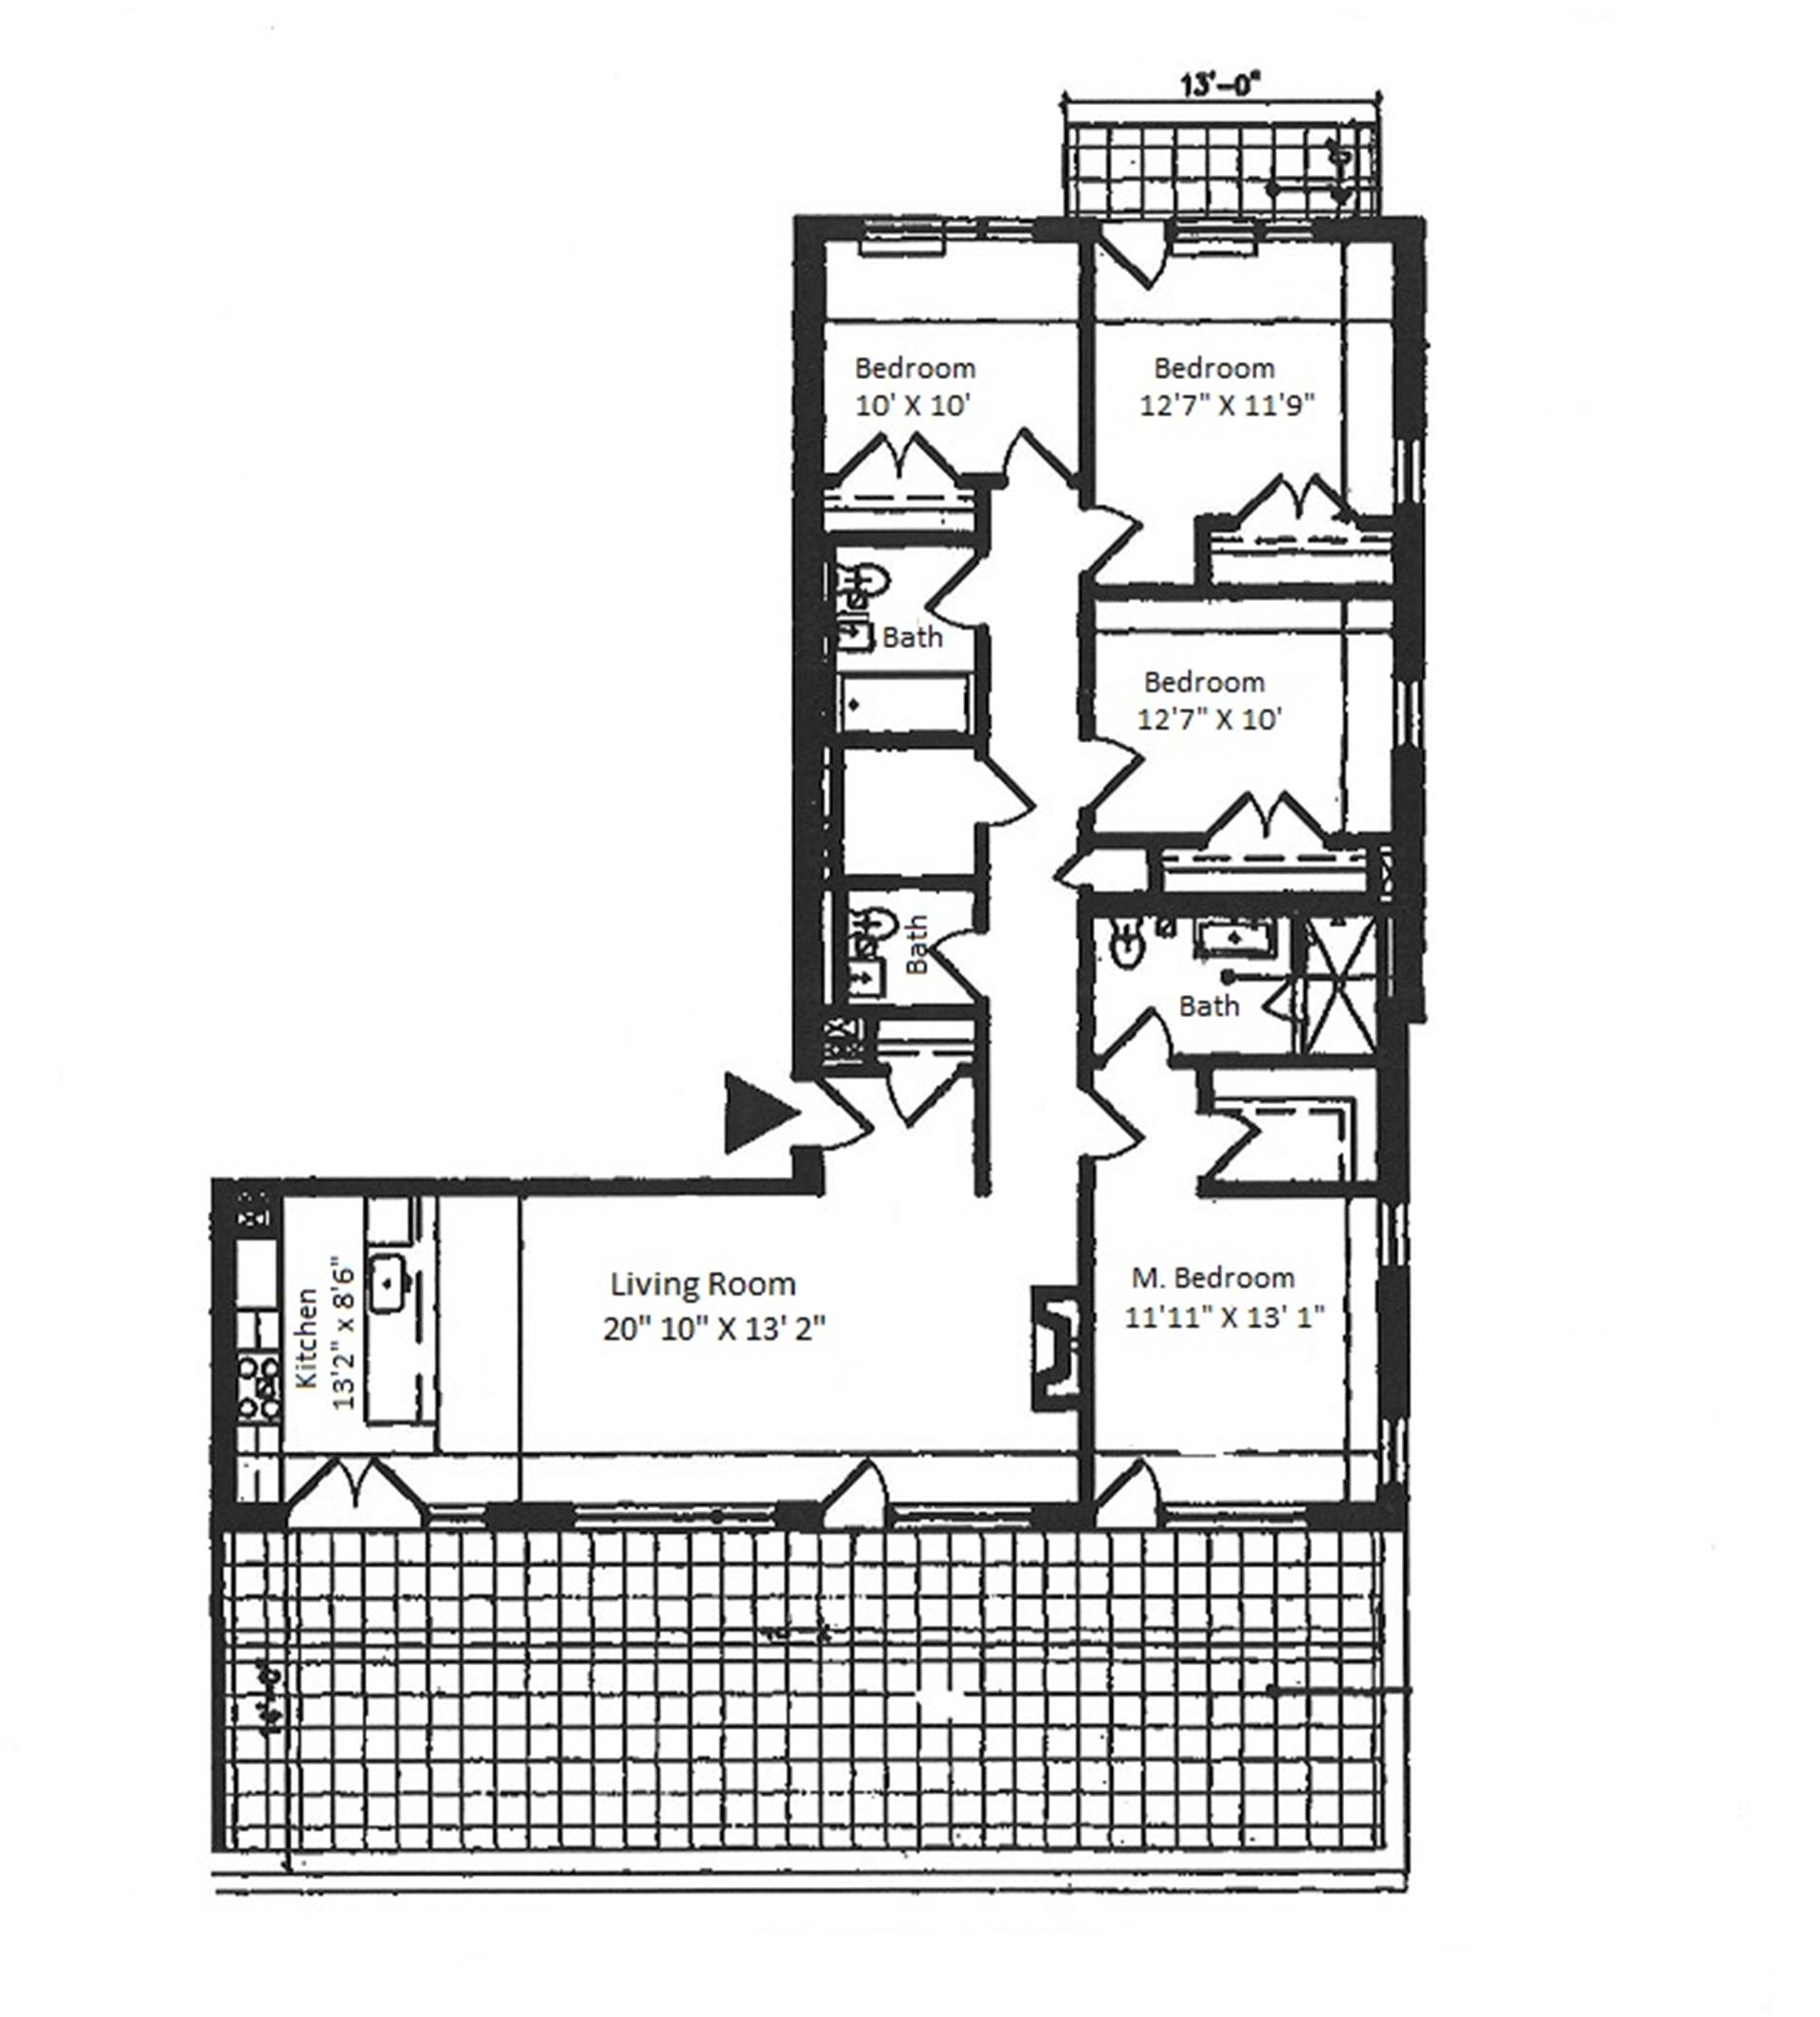 Floor plan of 154 Attorney St, 701 - Lower East Side, New York